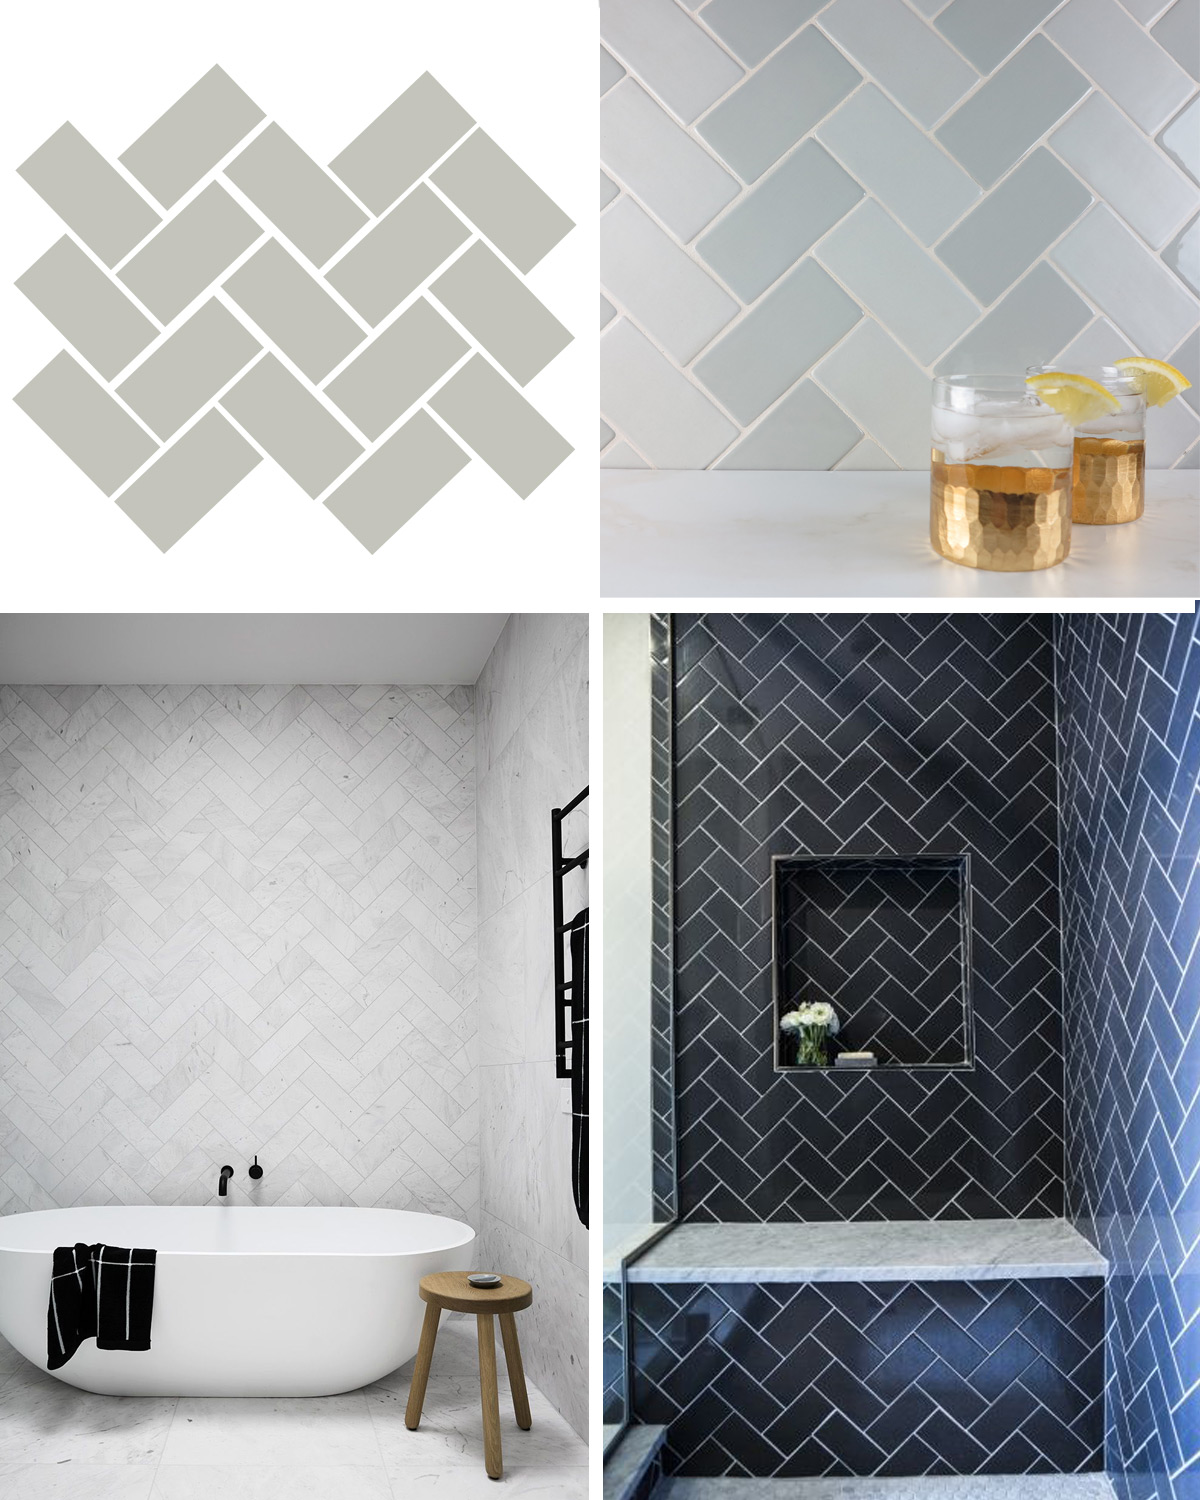 8 subway tile patterns the home